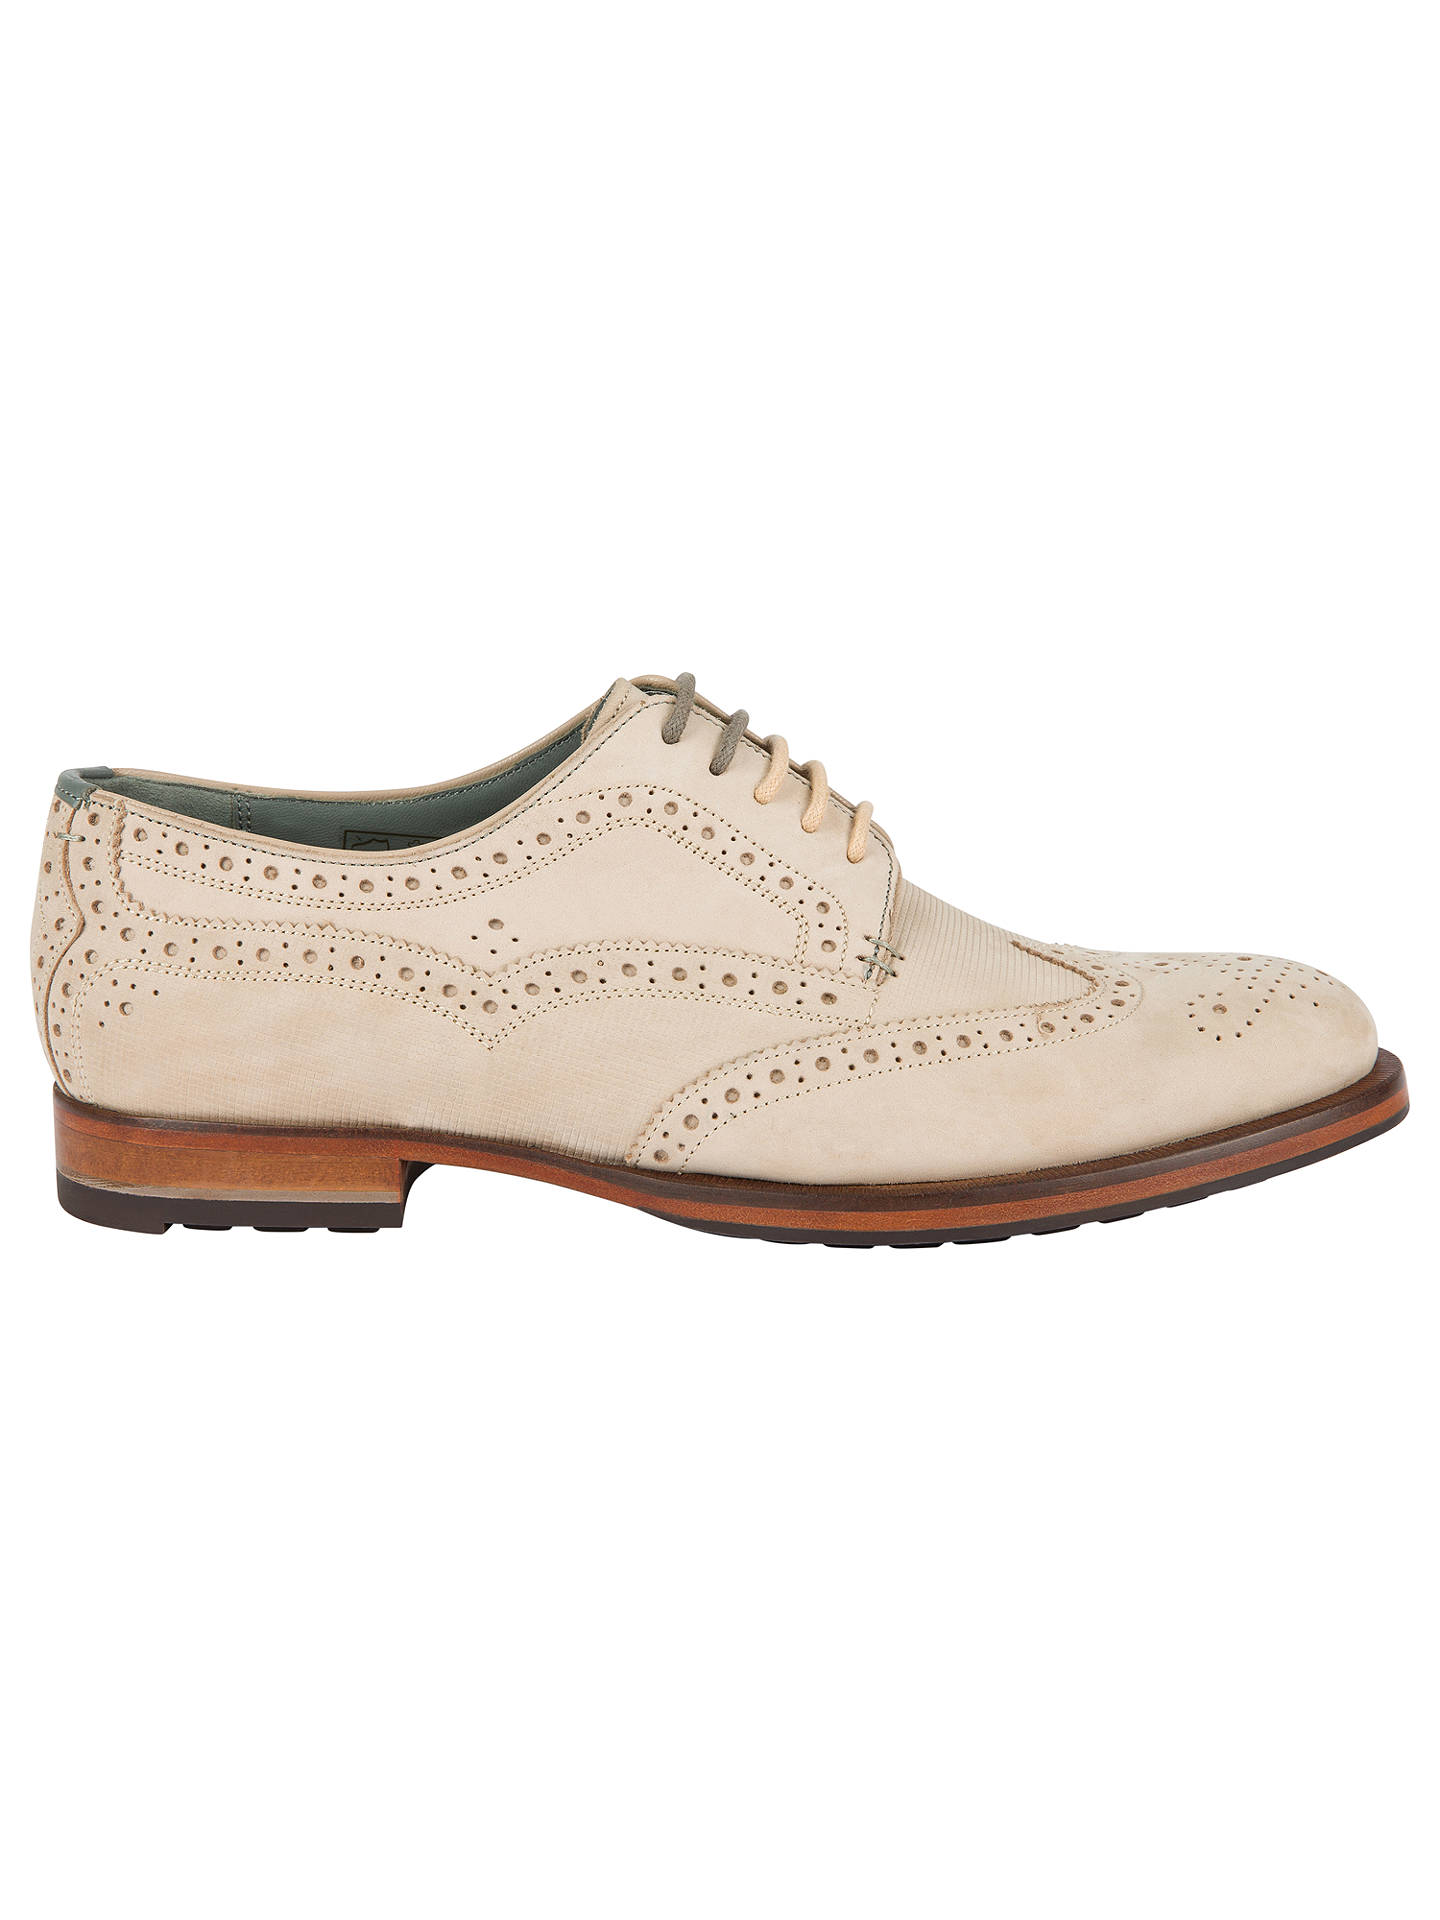 Buy Ted Baker Senapen Derby Brogues, Brown, 6 Online at johnlewis.com